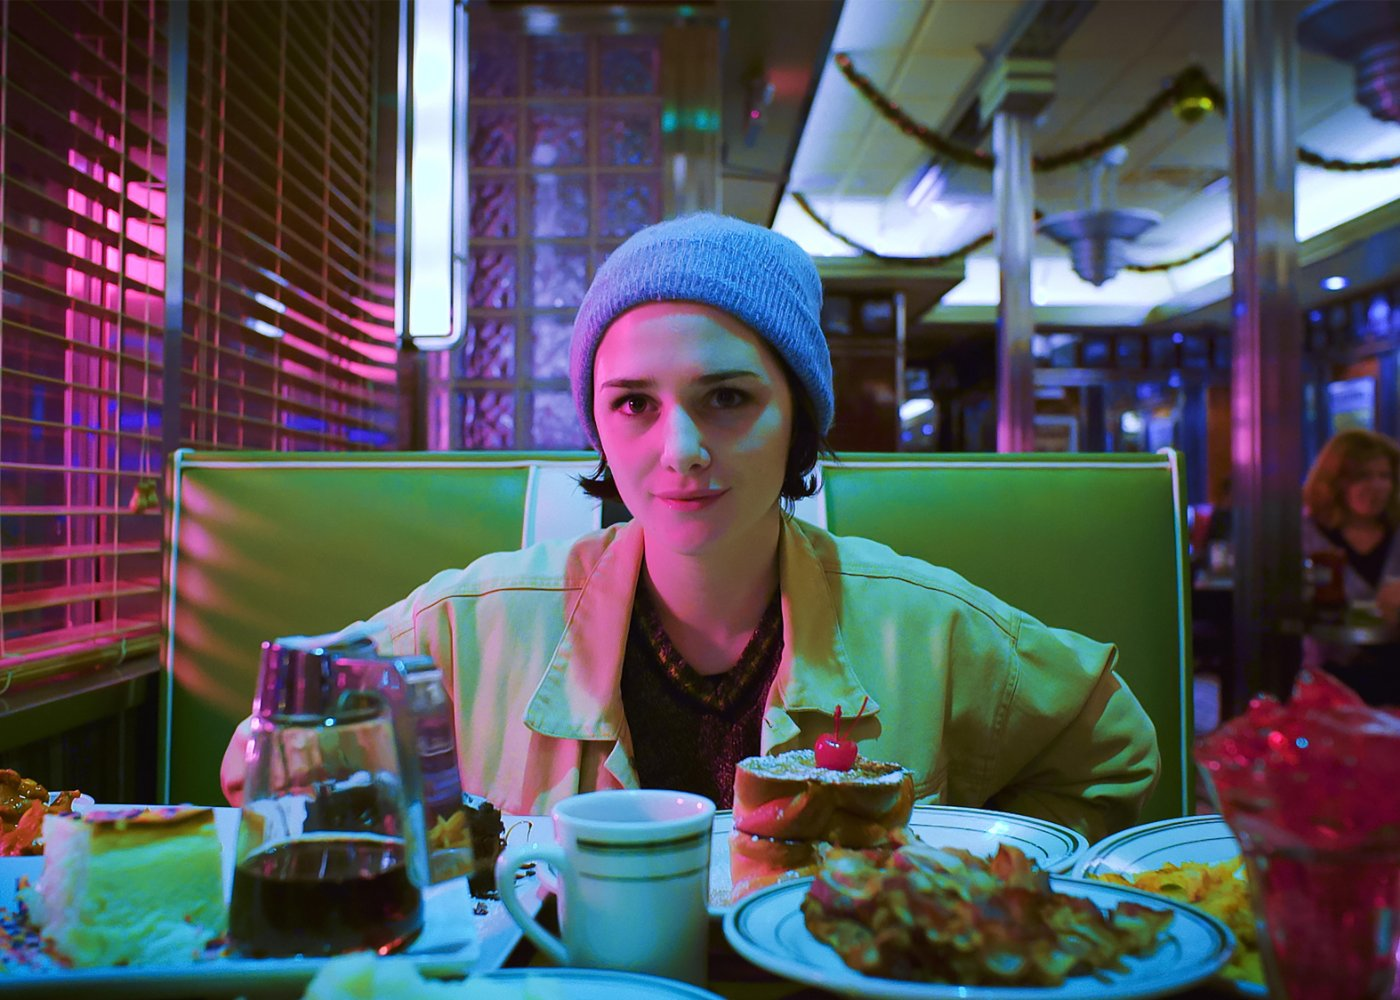 The Overlook Film Festival: Like Me is a Gonzo Thriller for the Coachella Generation